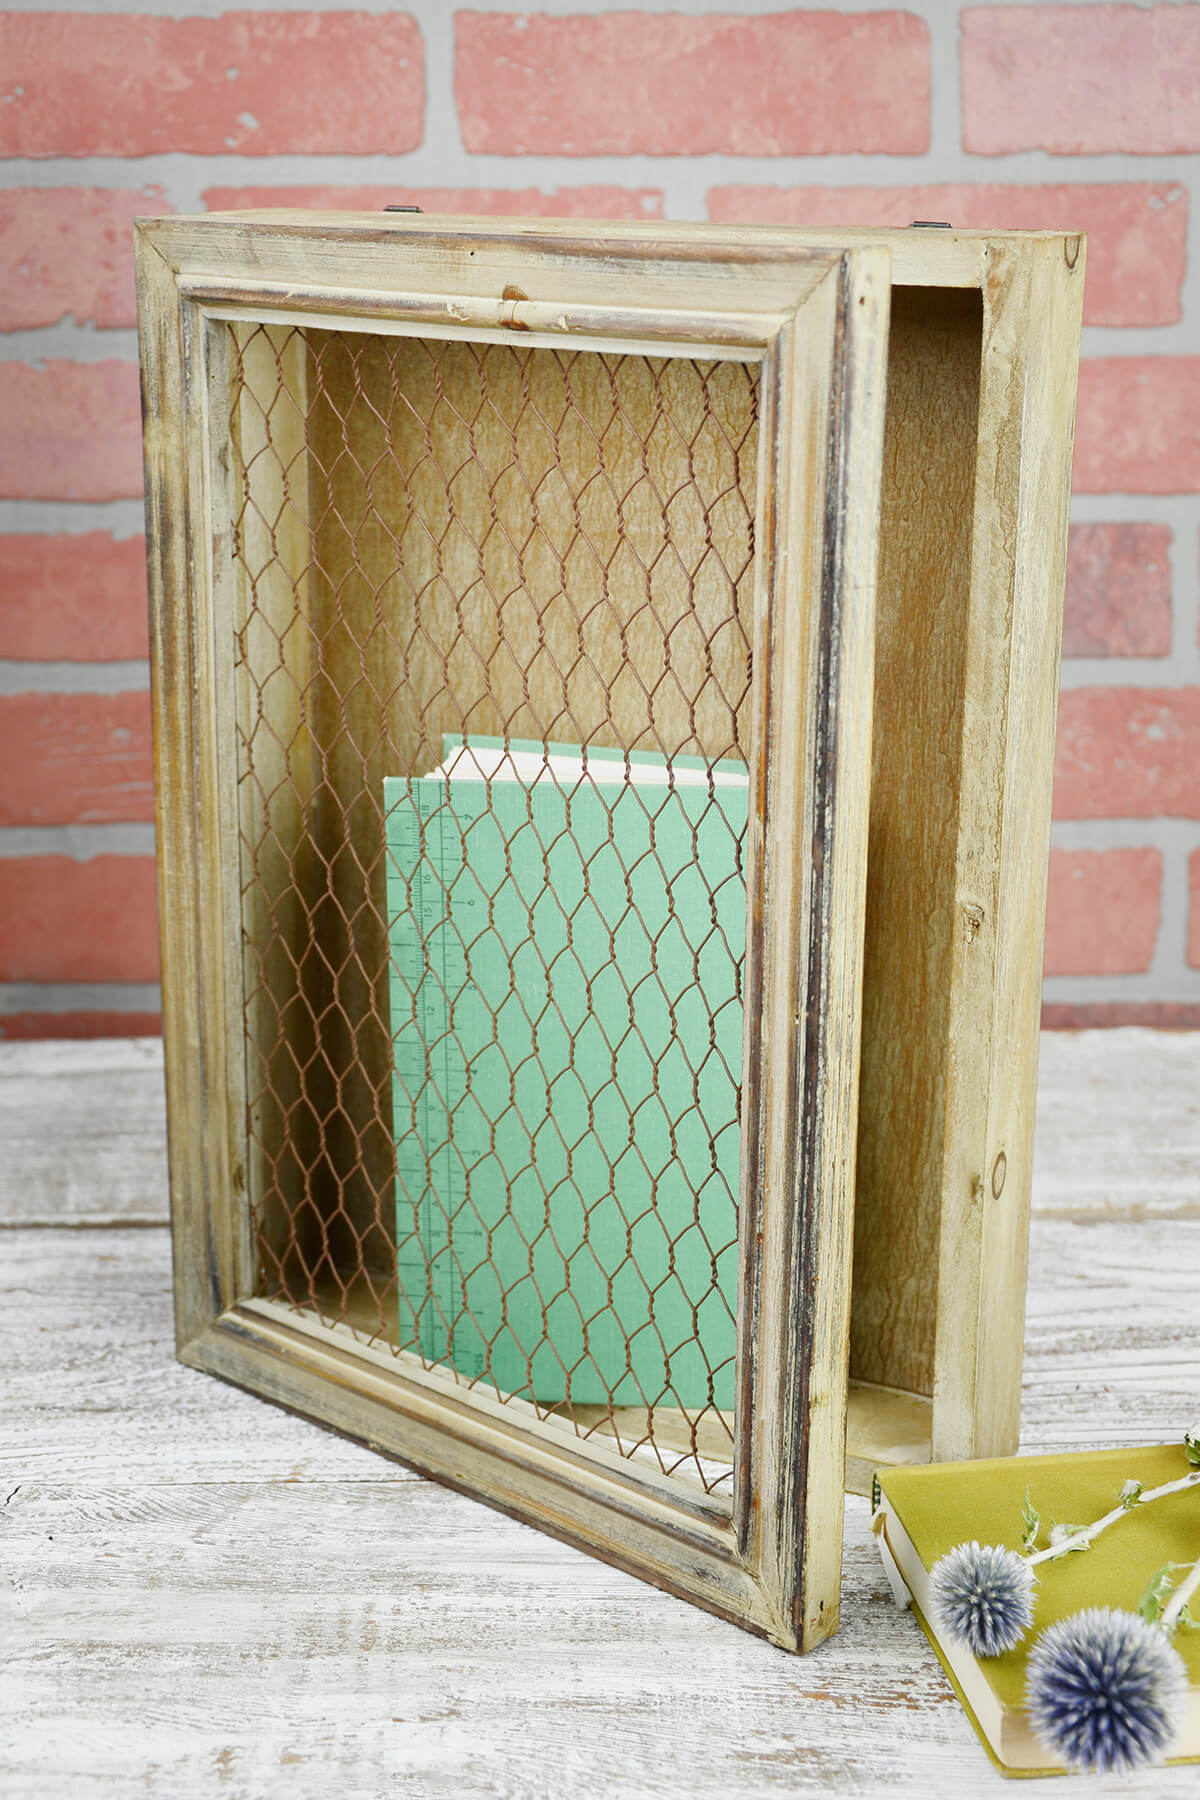 Rustic Wood Chicken Wire Wall Decor 10x14 Hinged